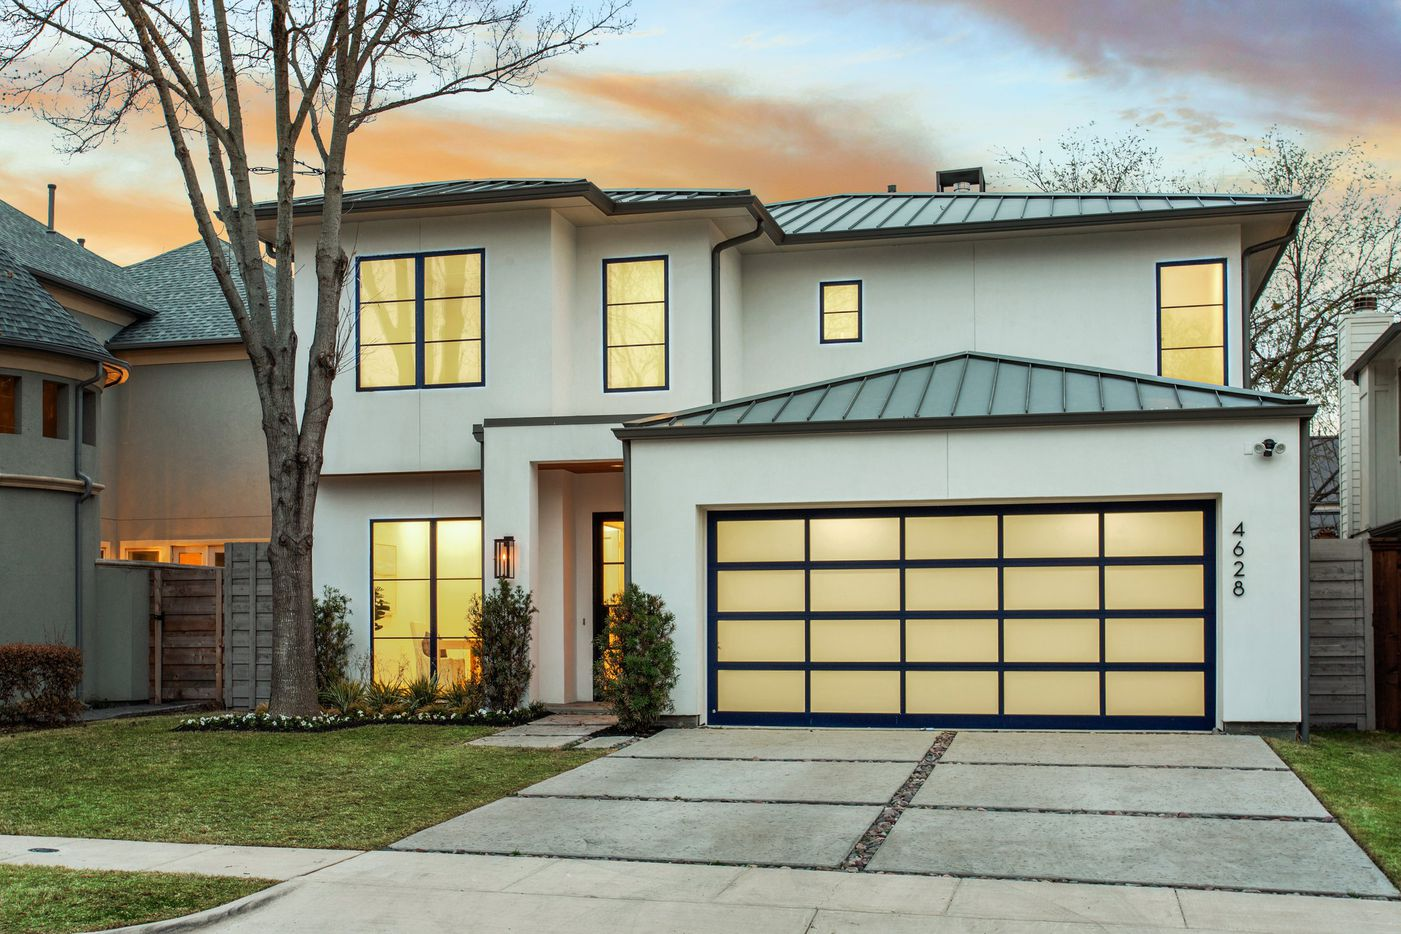 Take a look at the home at 4628 Stanford Ave. in Dallas, TX.